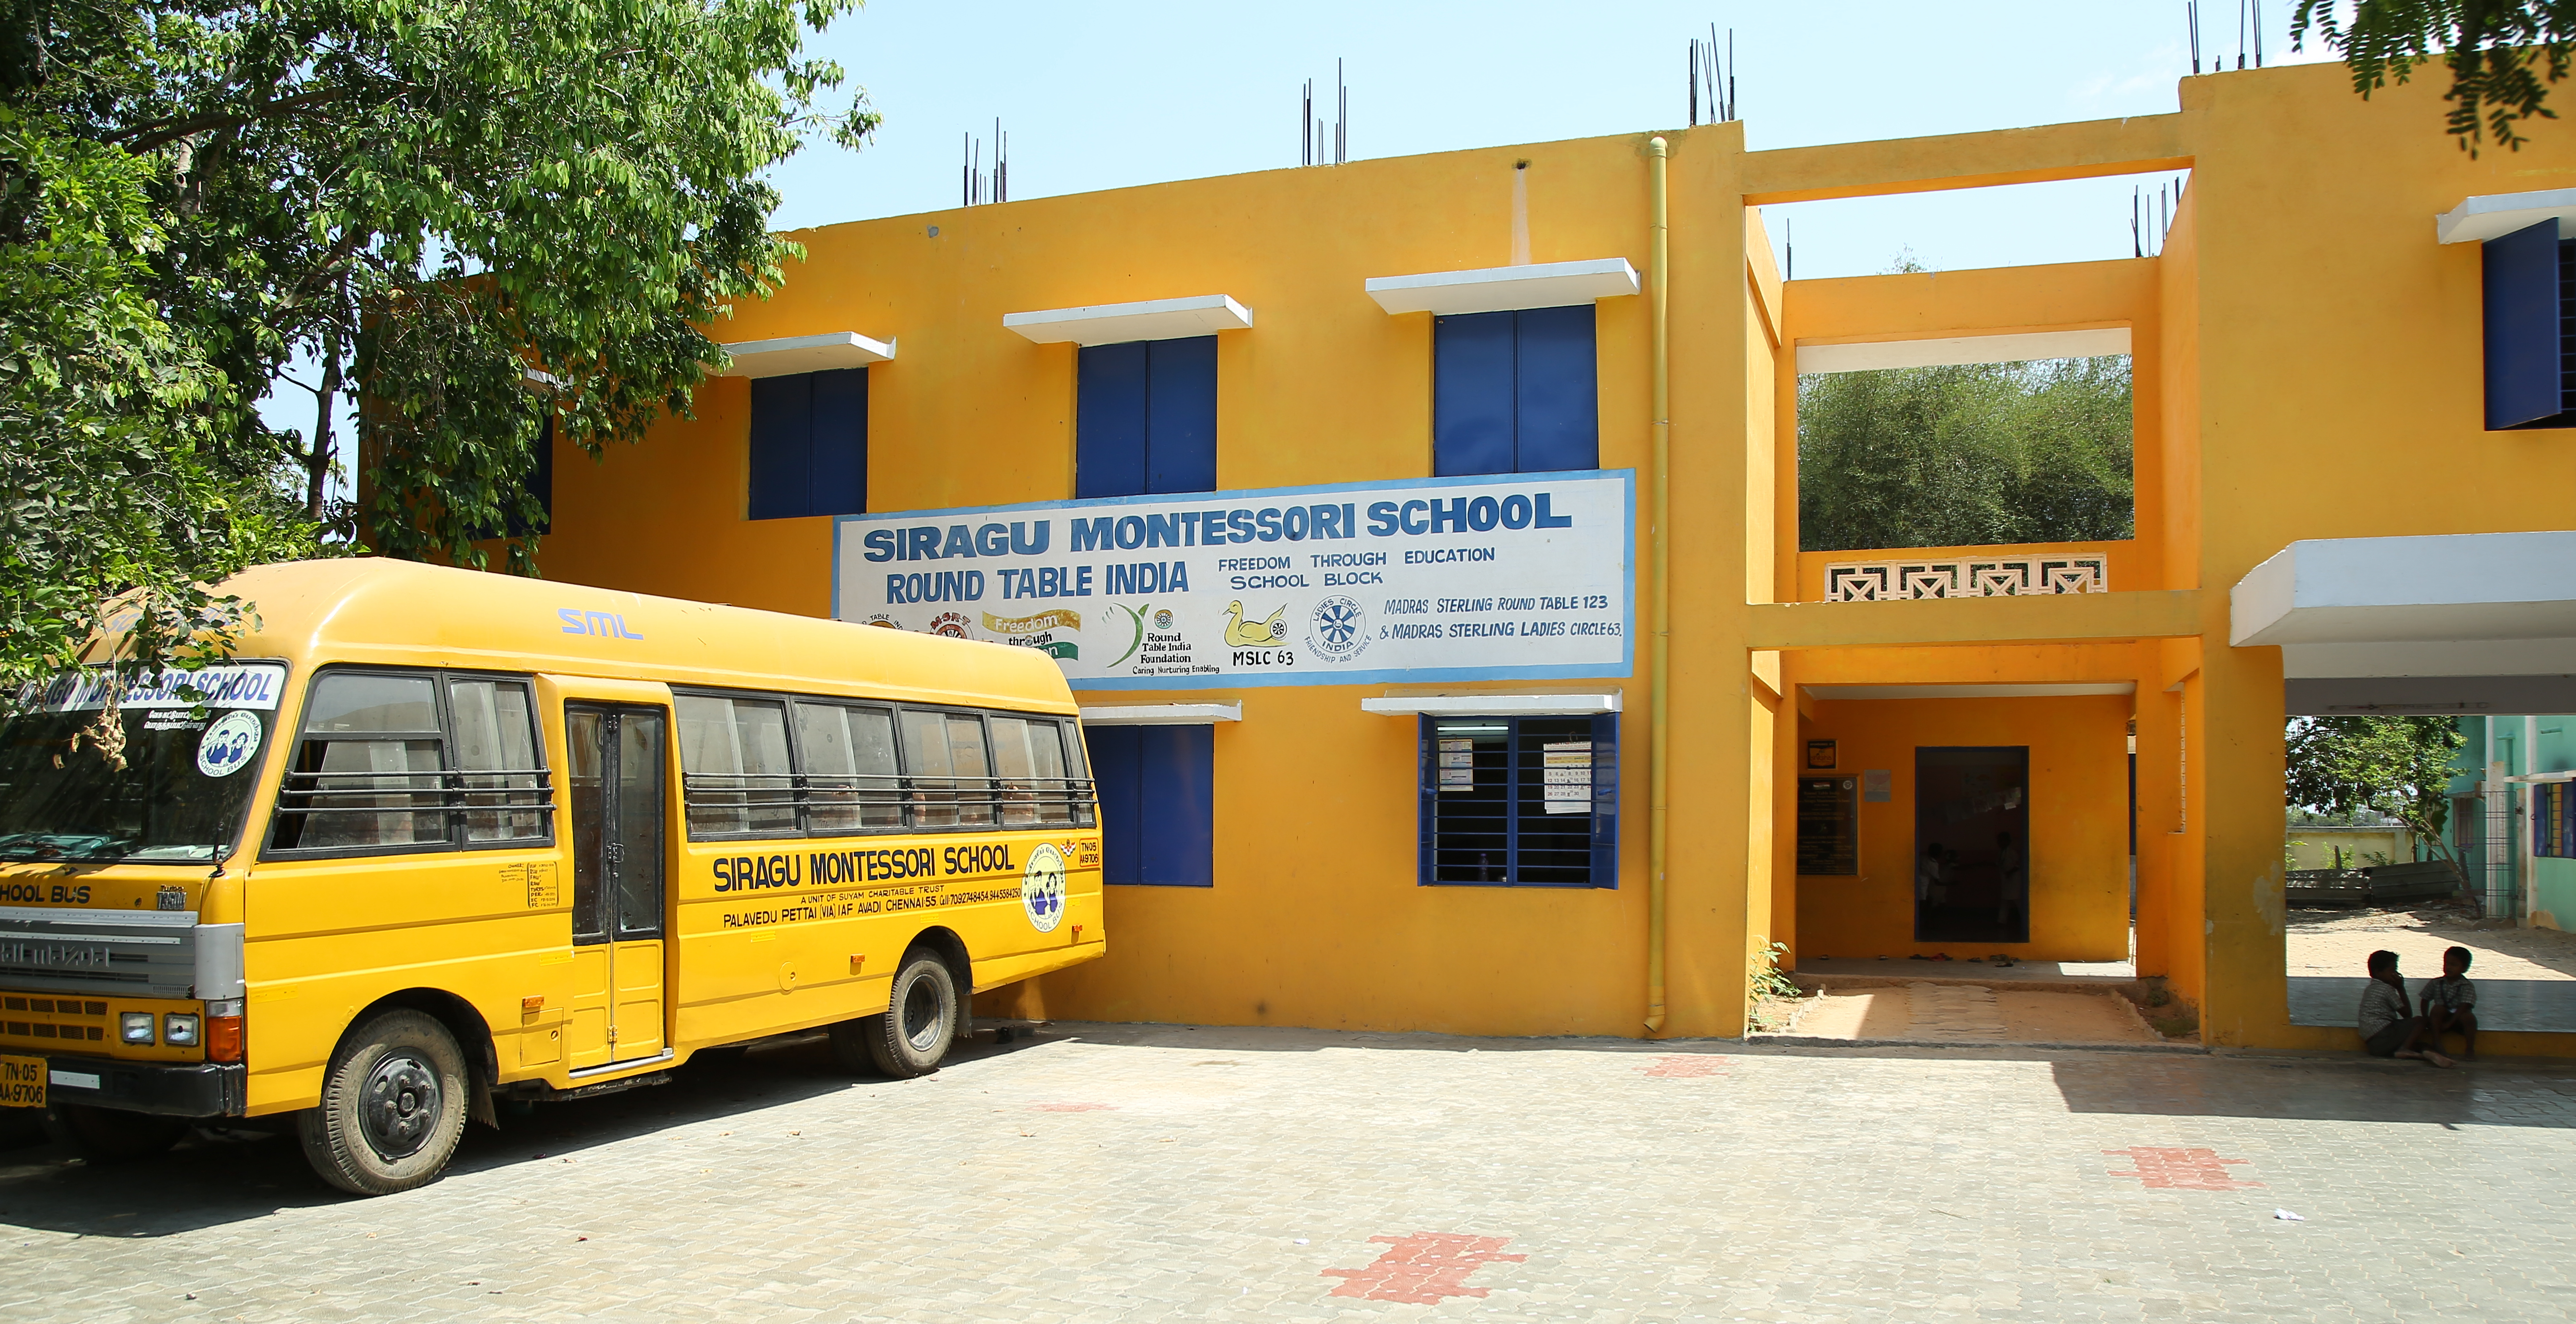 Siragu Montessori School